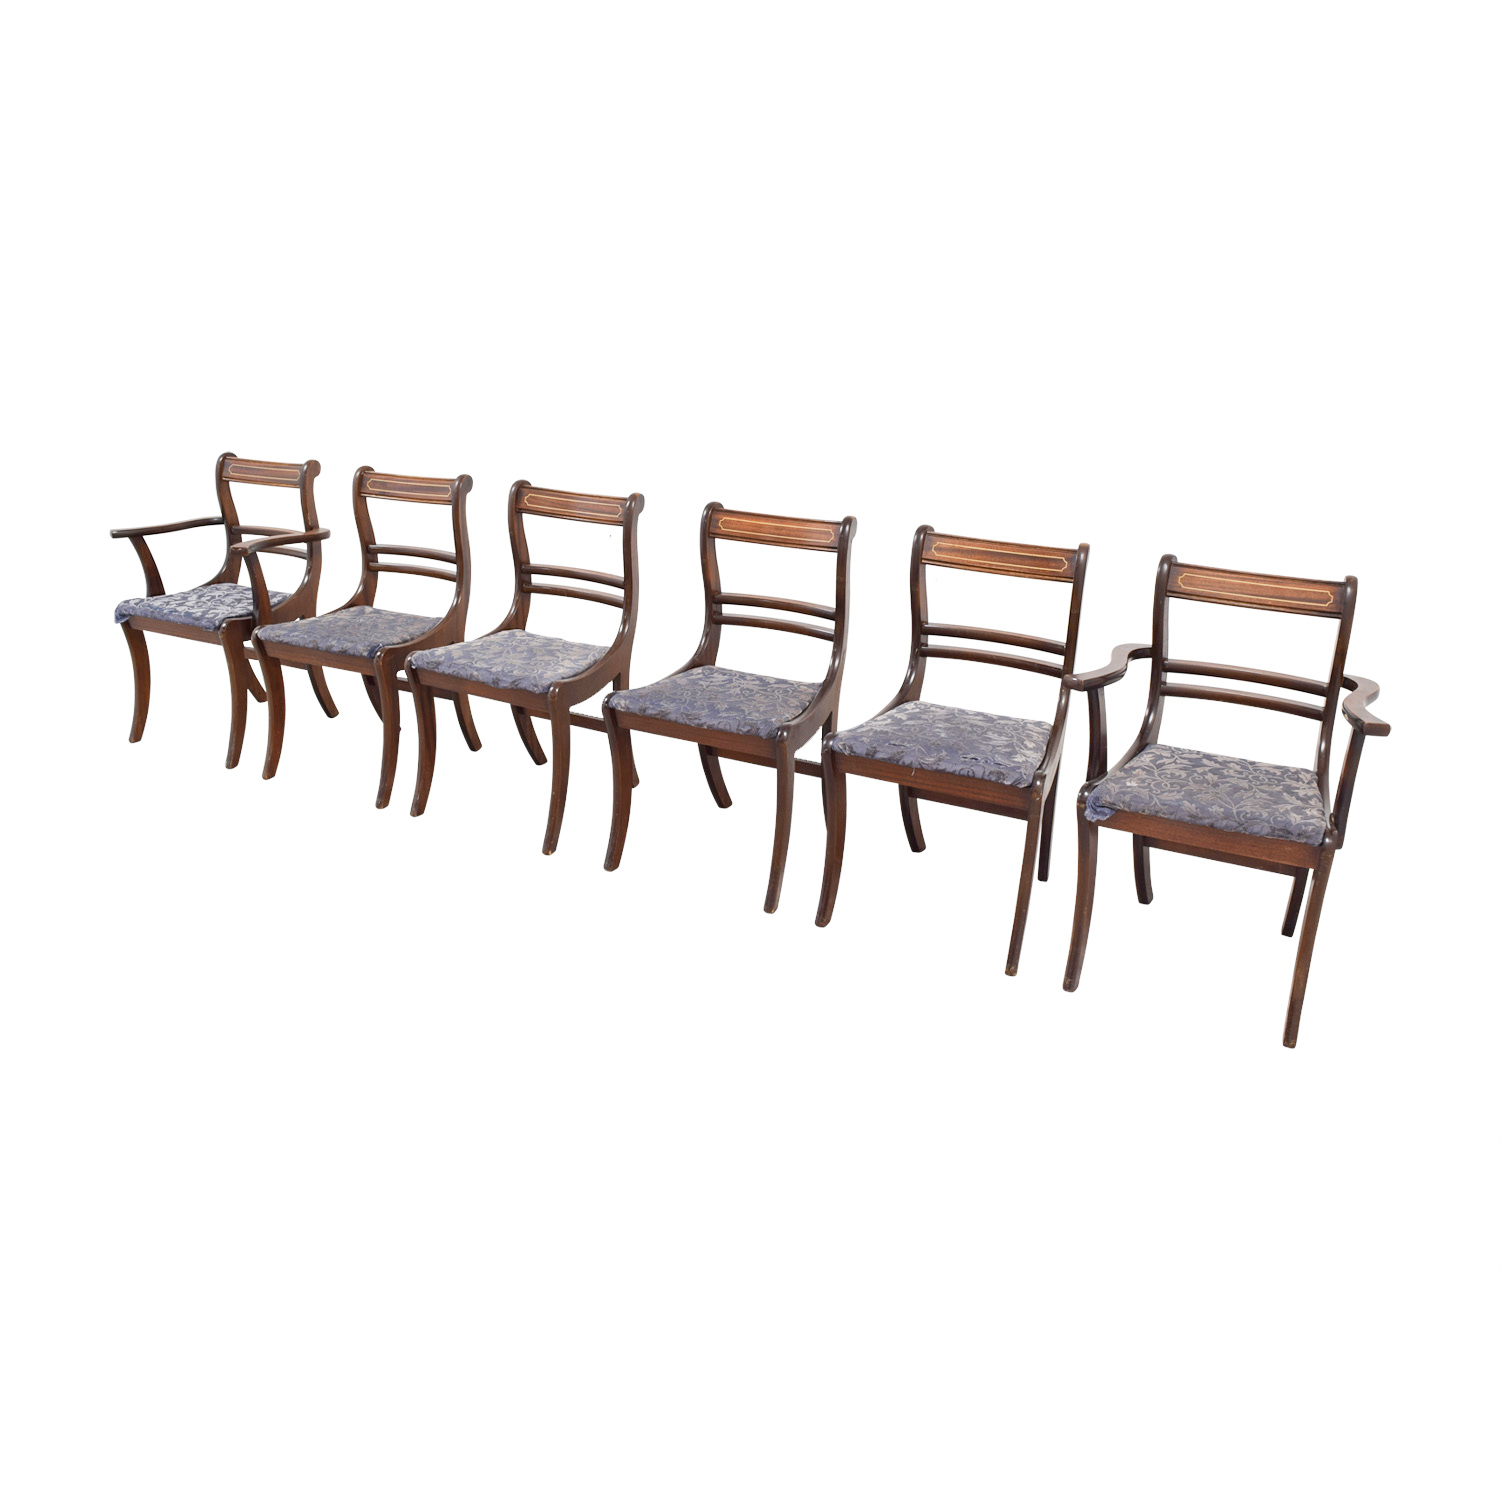 Wood Dining Chairs with Removable Blue Cushions second hand